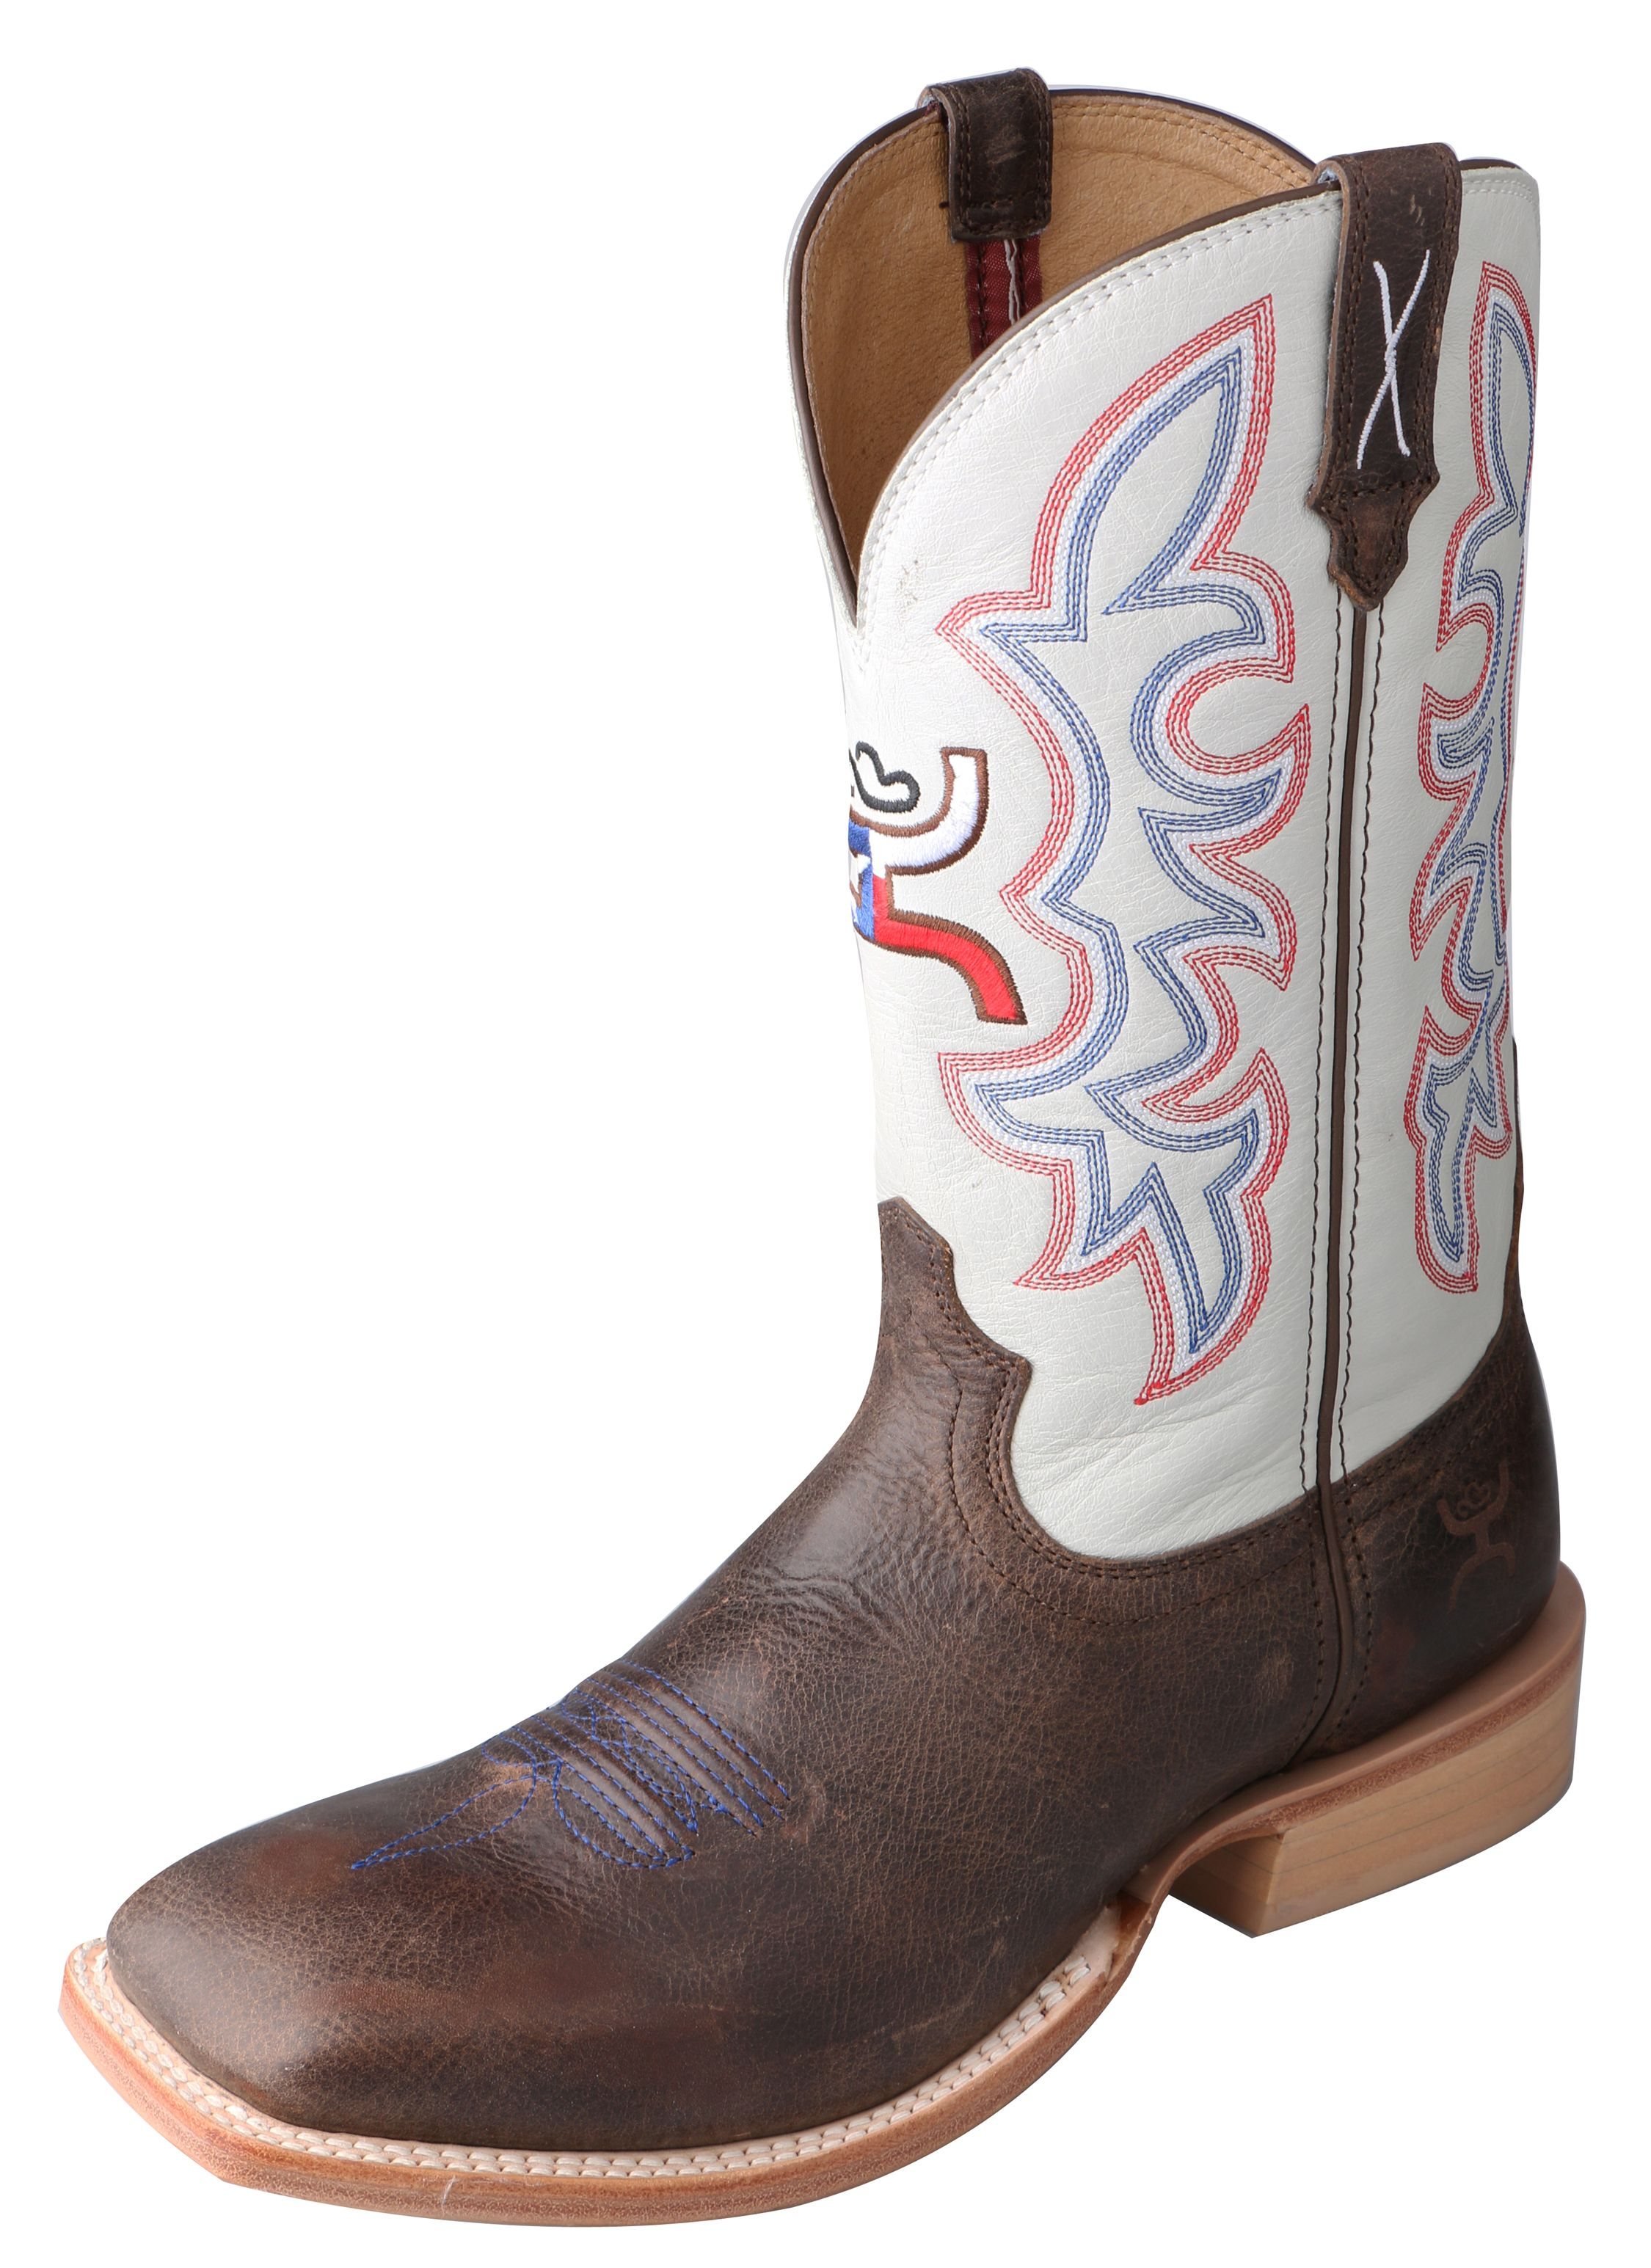 9948c990cd4 Twisted X Boots - Hooey Collection Men s - MHY0011